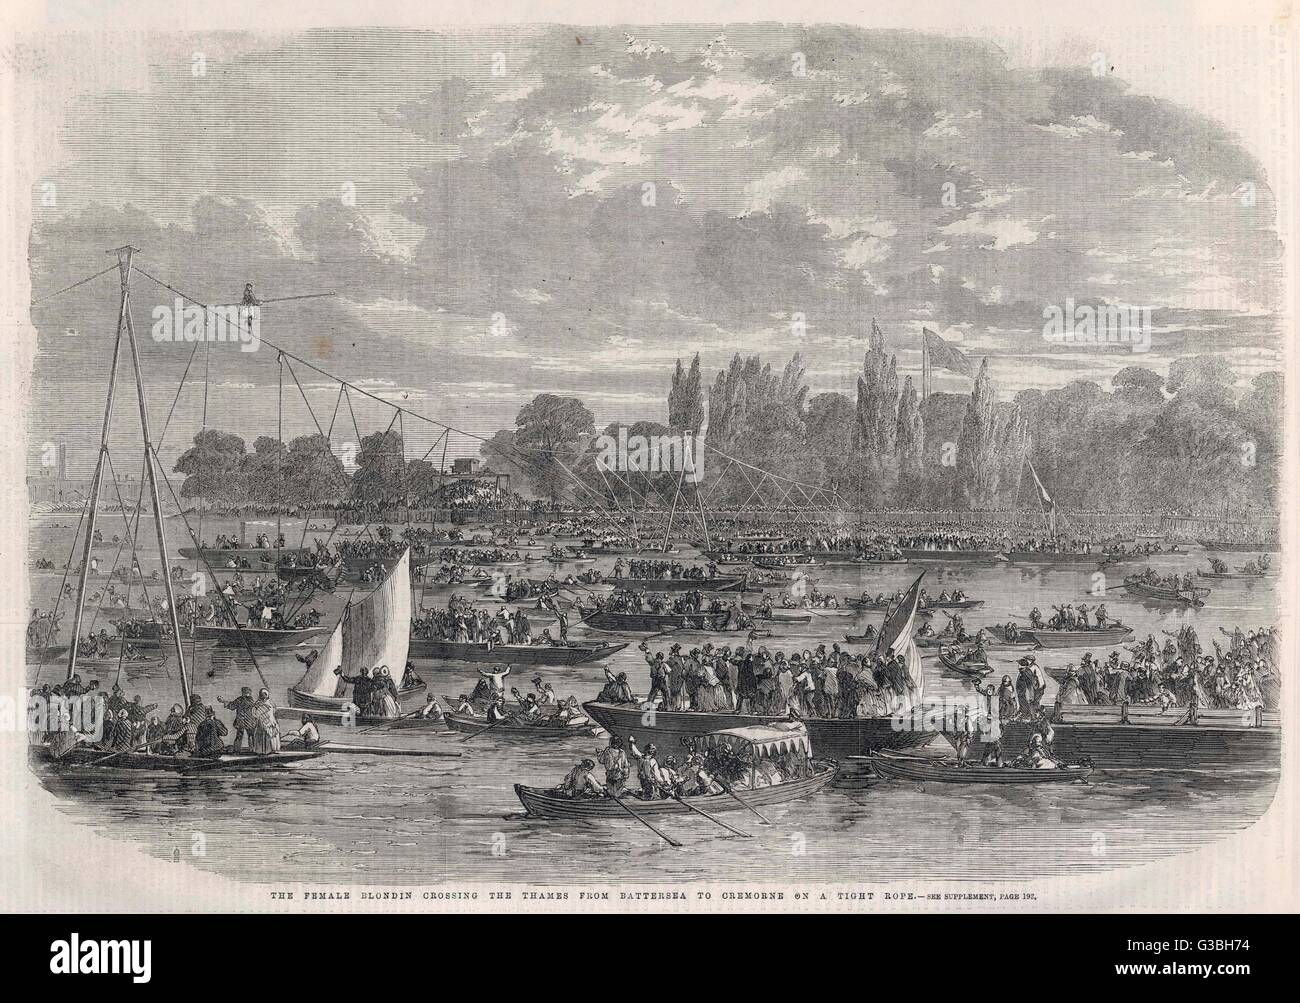 Madame Genevieve Young, the  'Female Blondin' crosses the  Thames between Battersea and  Cremorne       Date: 1861 Stock Photo